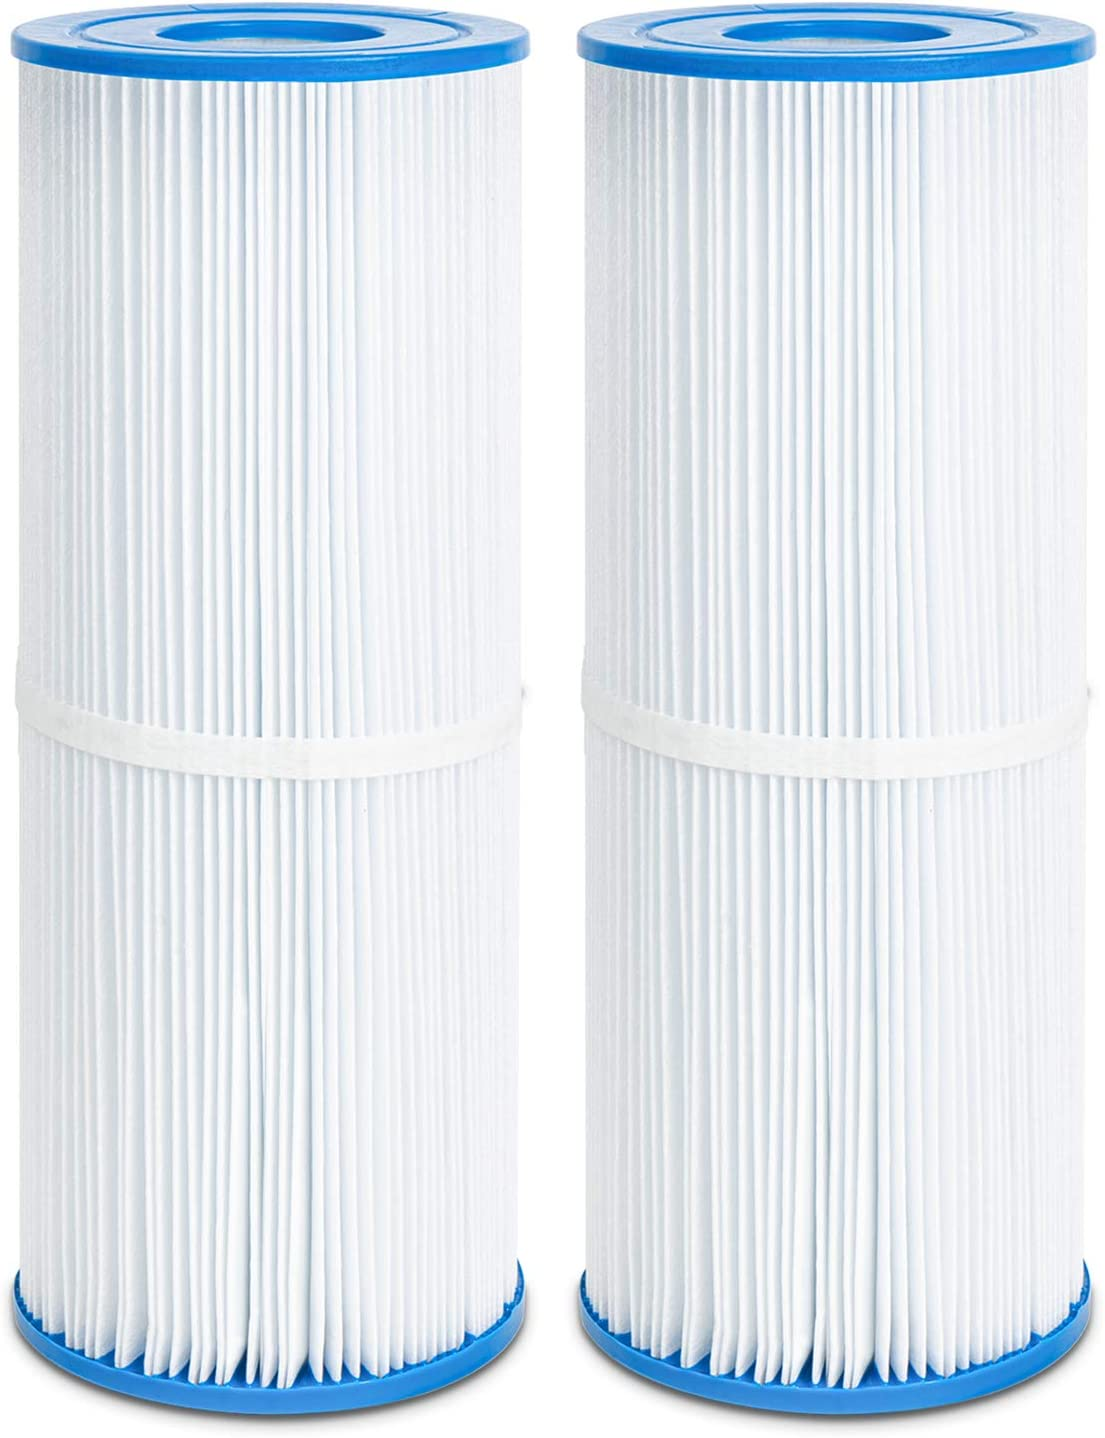 Future Way Hot Tub Filter with 2021 spring and summer new Many popular brands Compatible Pleatco PRB25-IN Unic